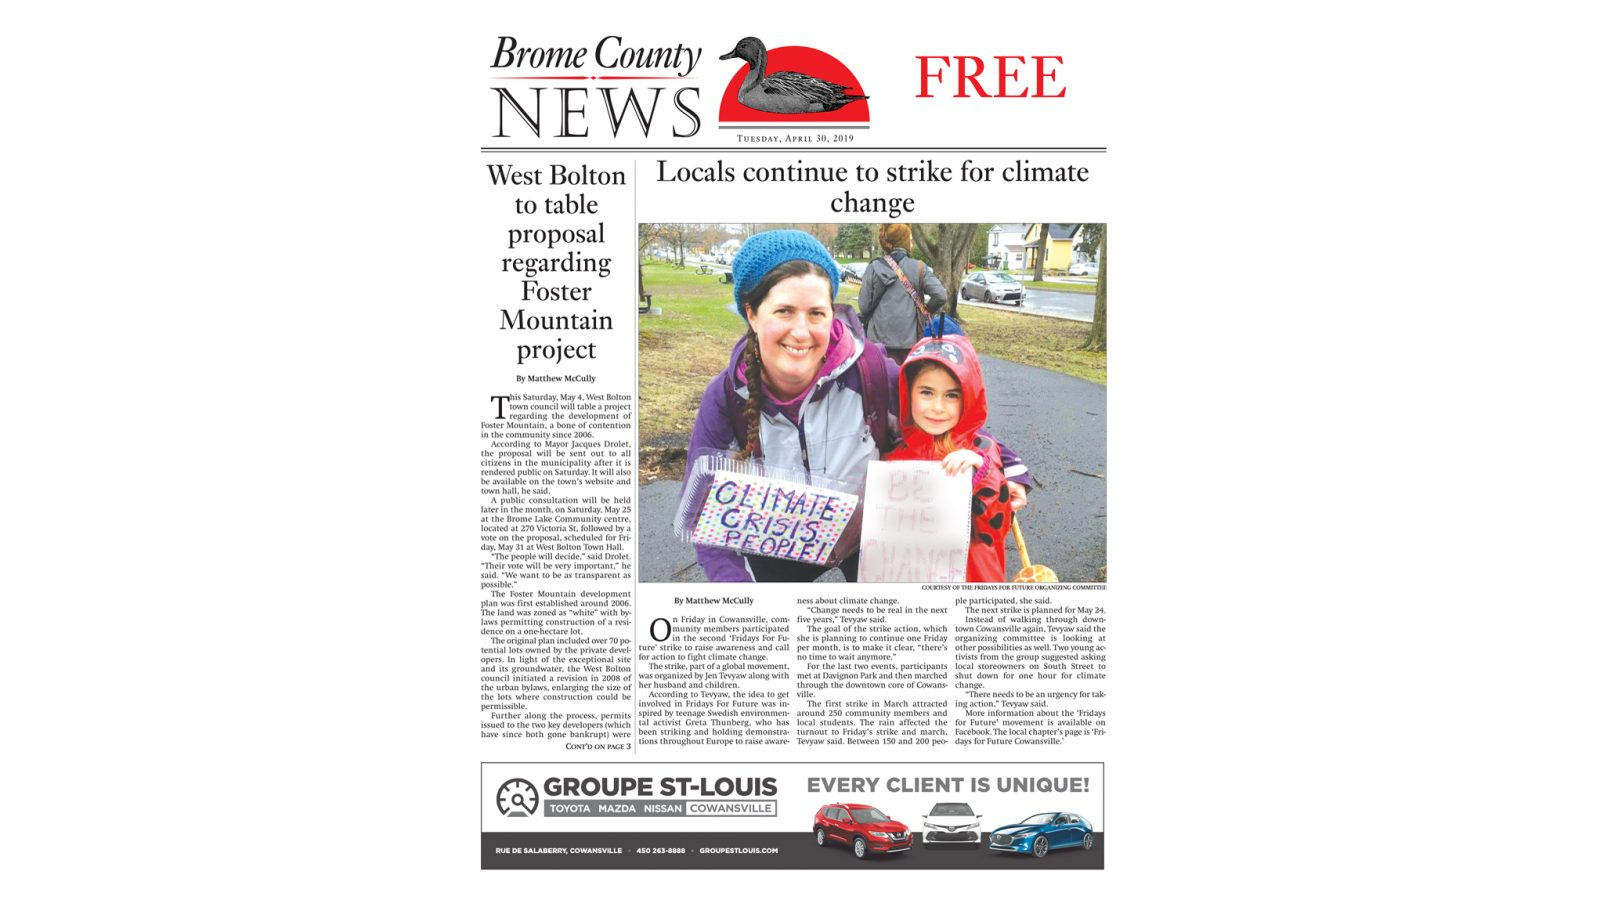 Brome County News, April 30, 2019 edition